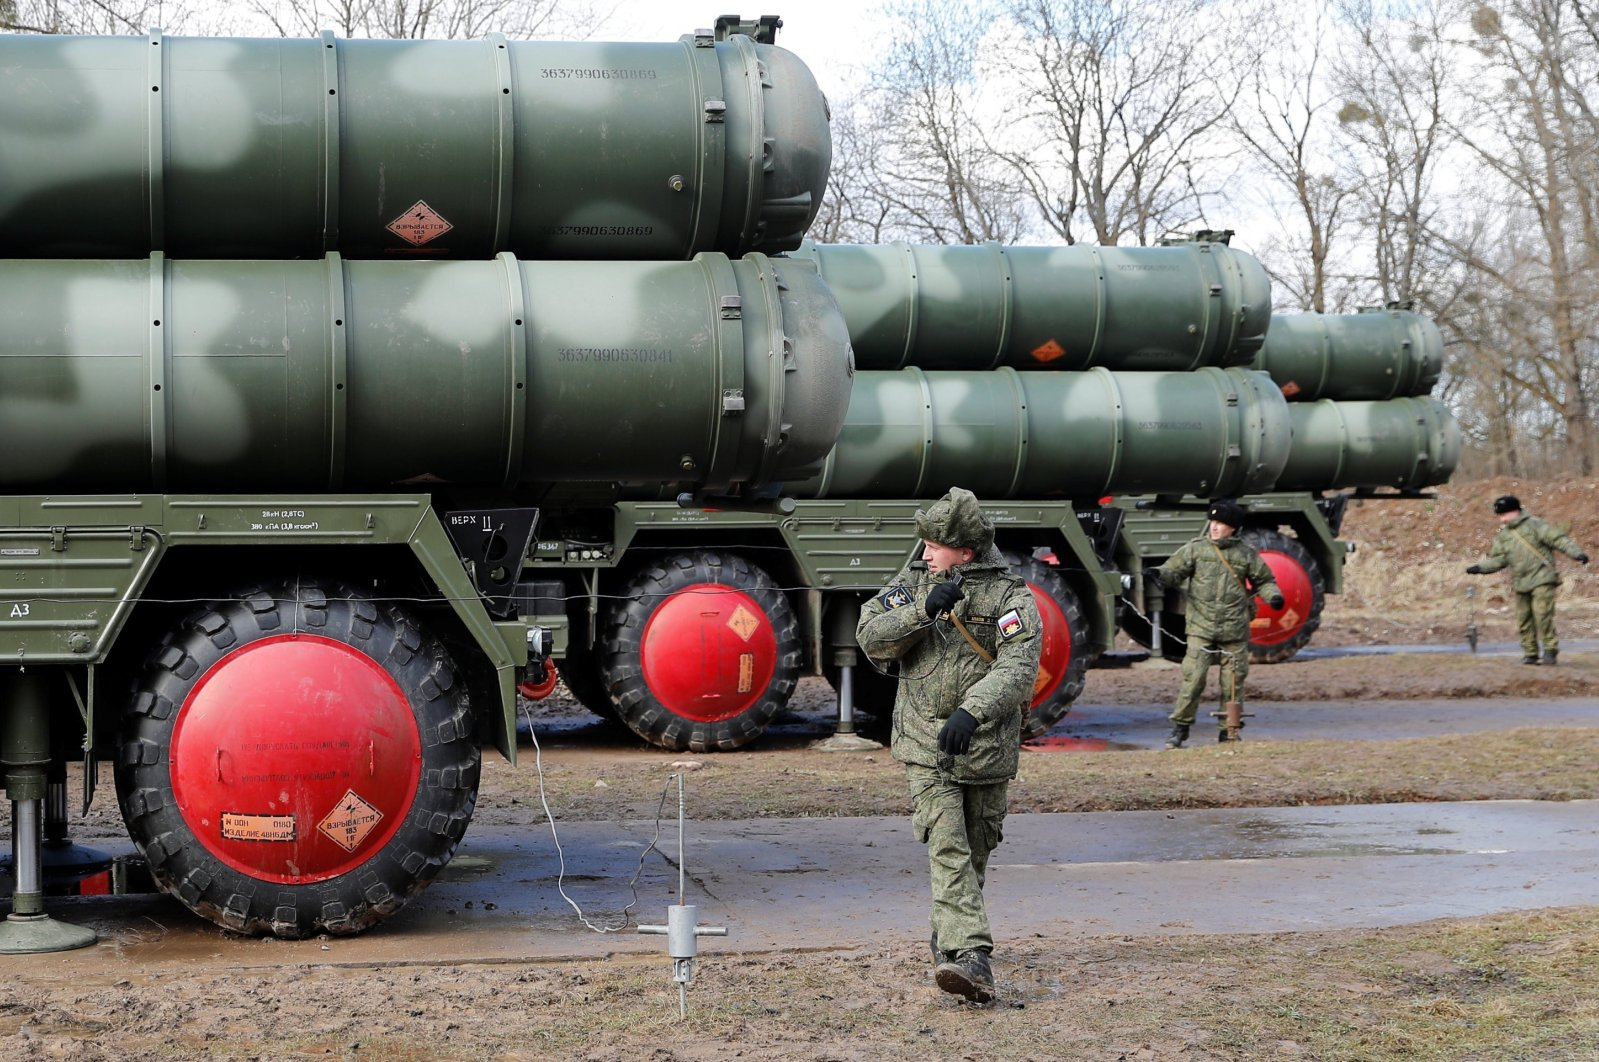 Russian servicemen stand next to a new S-400 surface-to-air missile system after its deployment at a military base outside the town of Gvardeysk near Kaliningrad, Russia on March 11, 2019. (Reuters Photo)